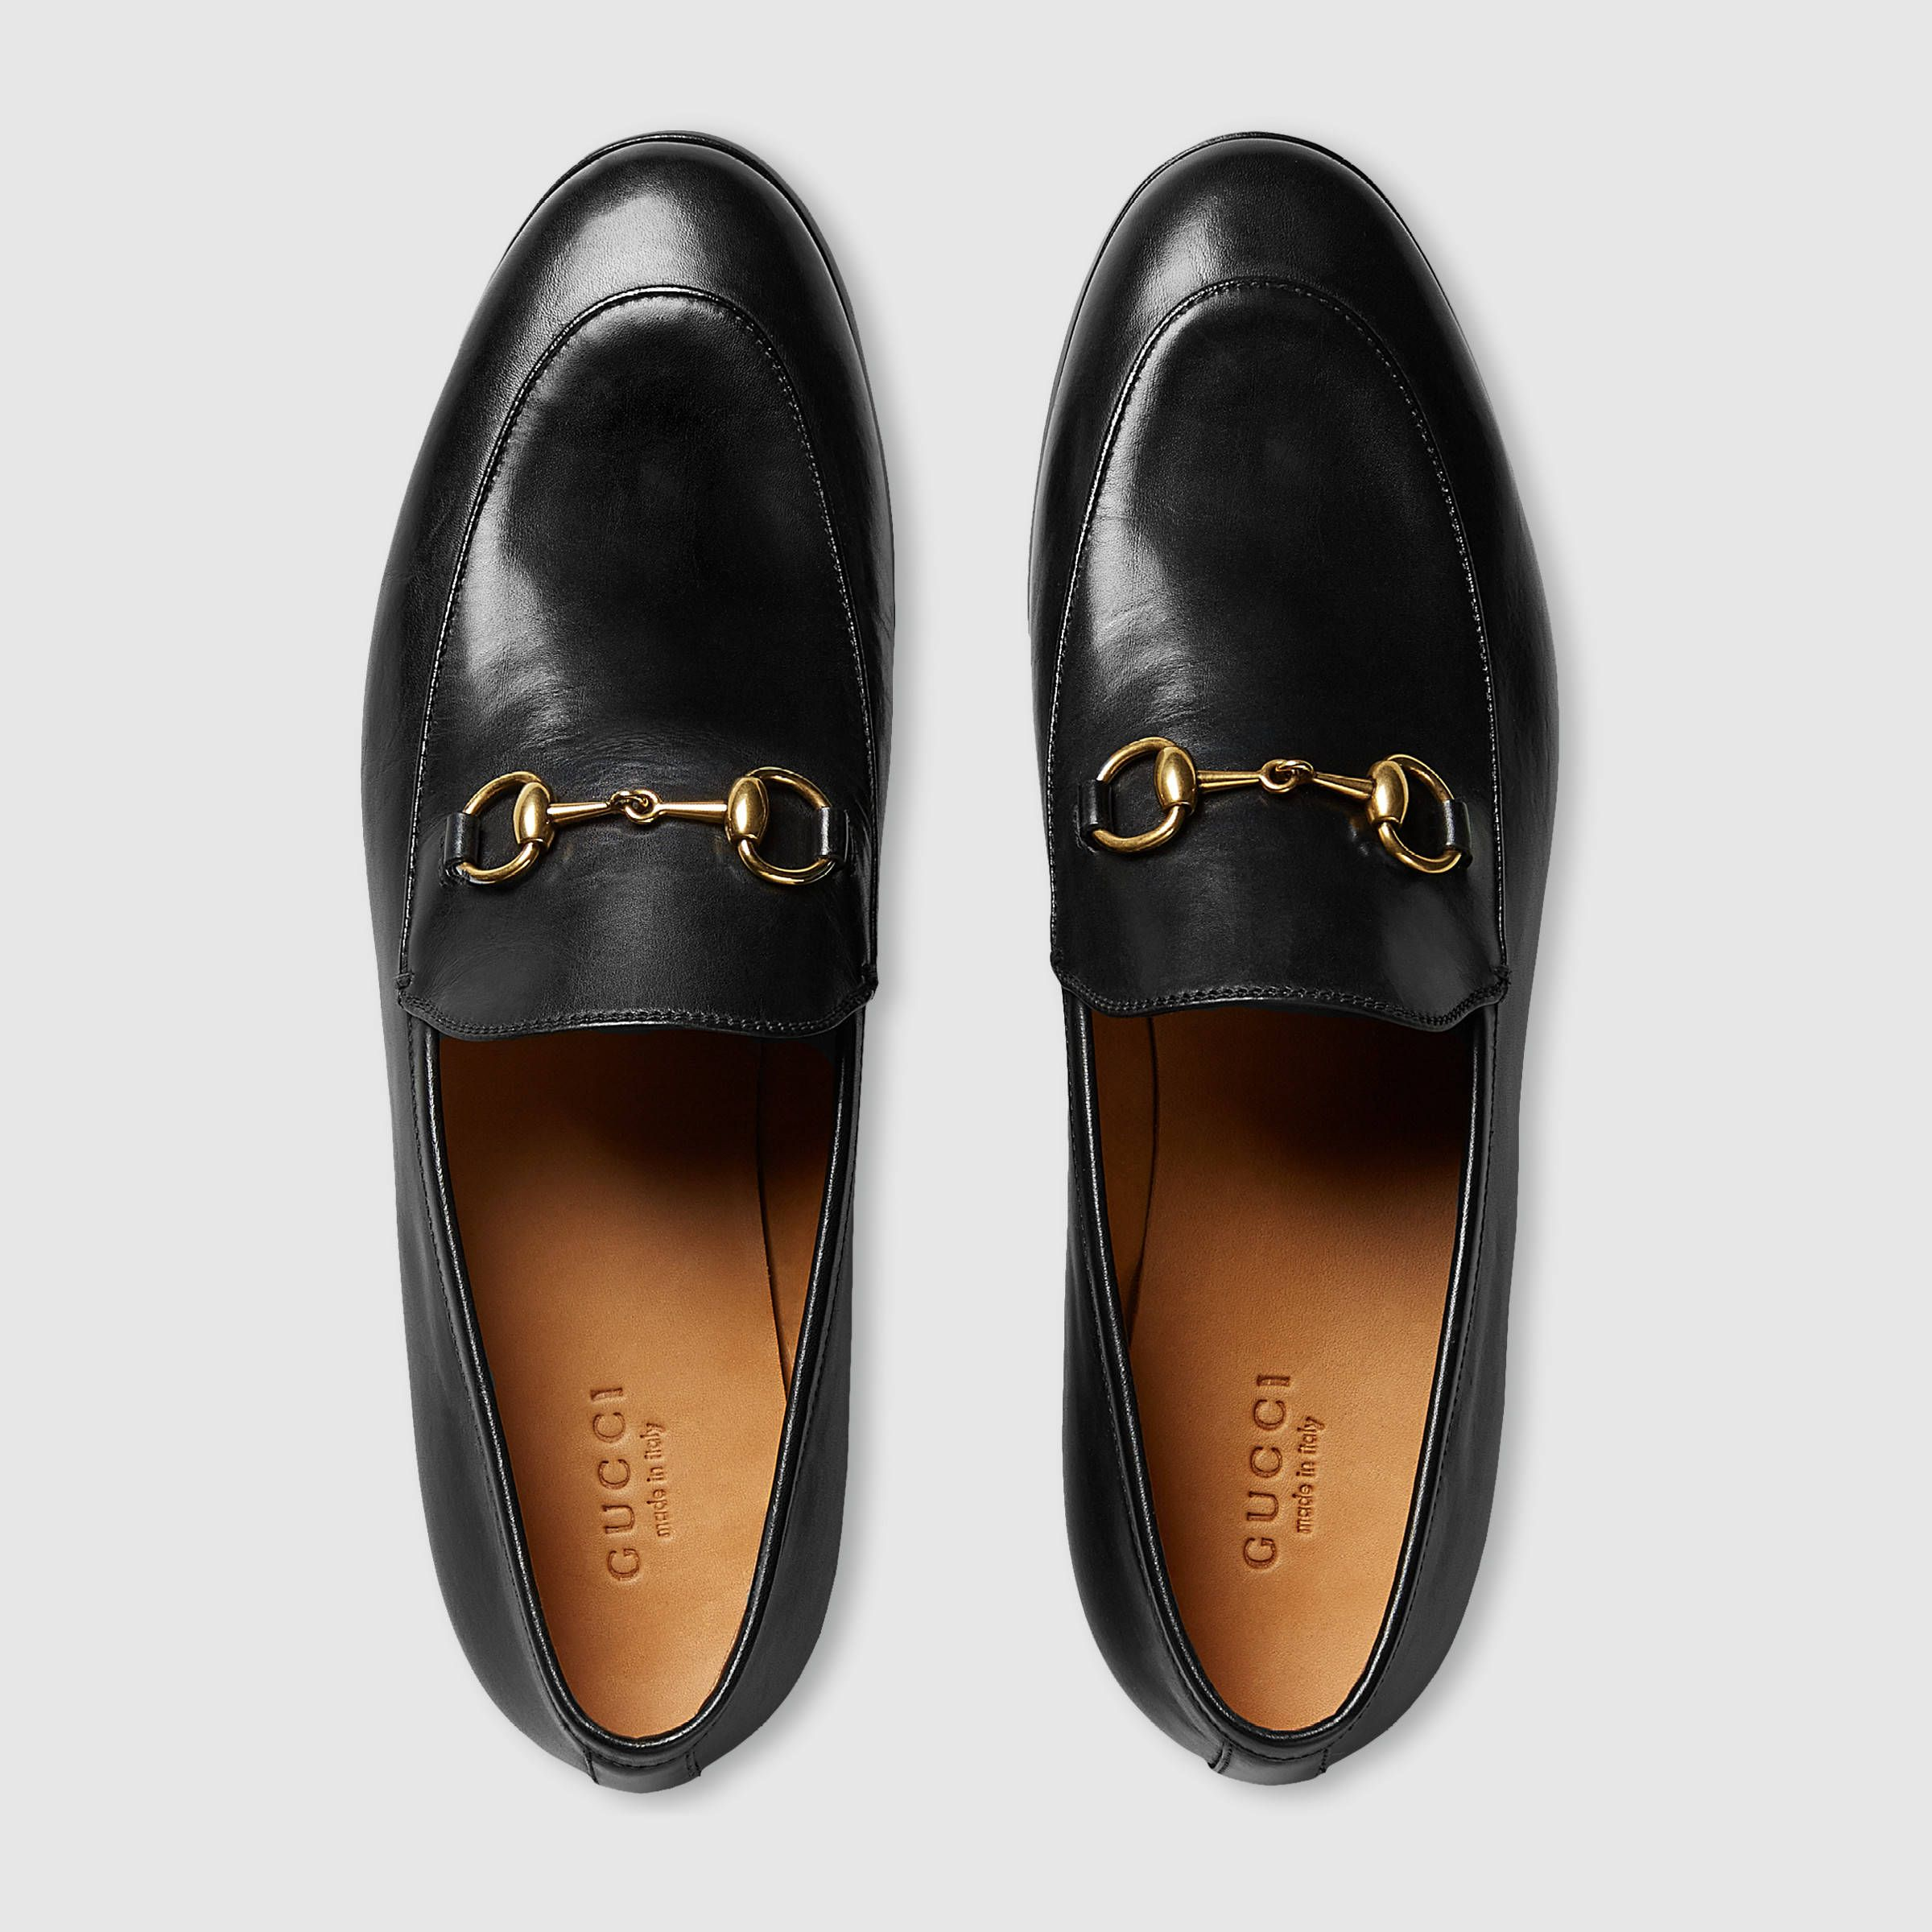 5e299d703659e Gucci Women - Gucci Jordaan leather loafer - 404069BLM001000 Mocassins Gucci  Femme, Gucci Chaussures,